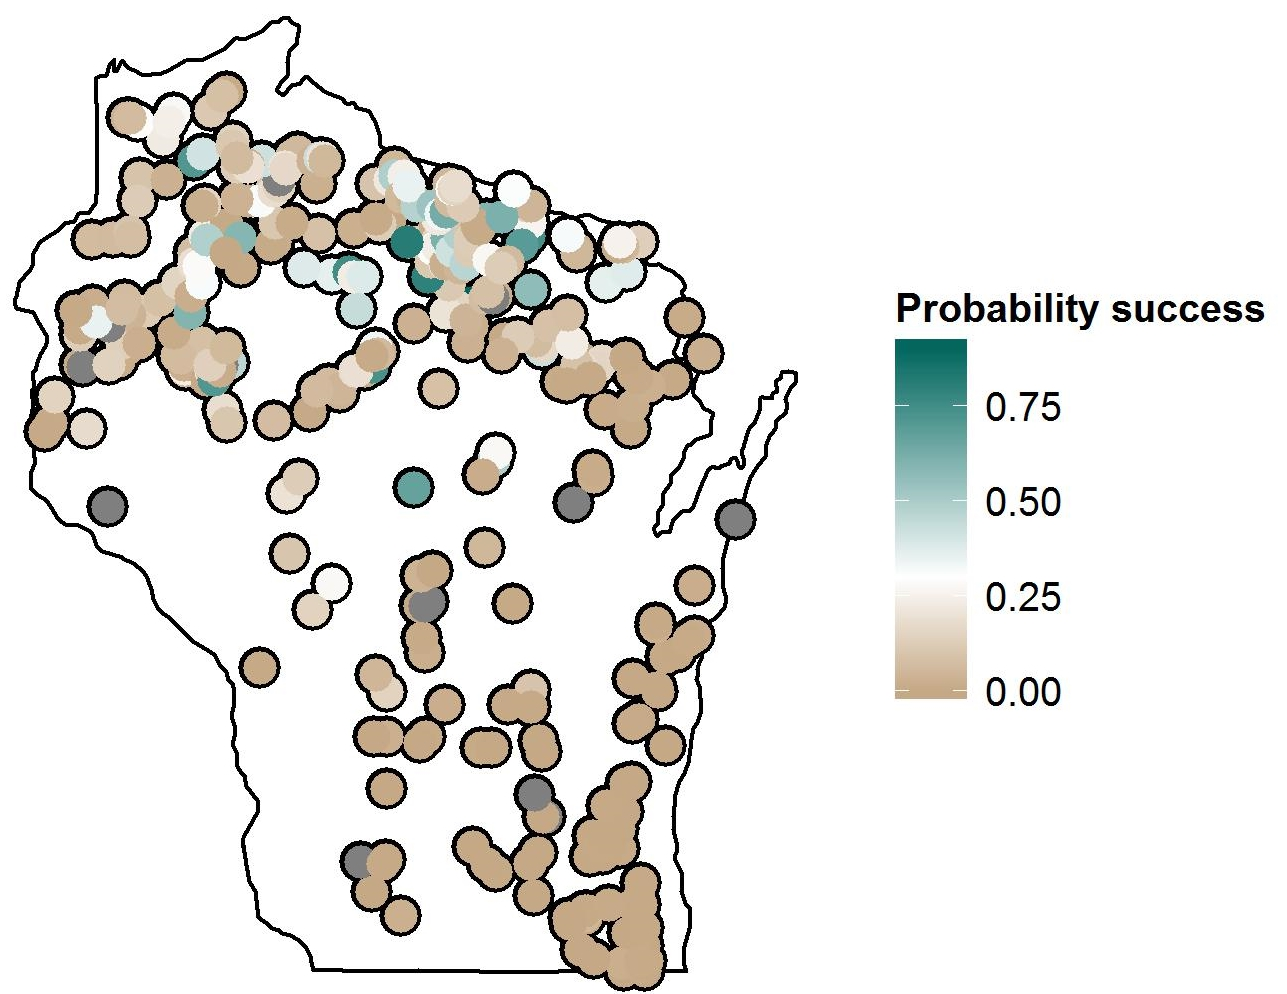 Predicted probability of natural walleye recruitment success in Wisconsin lakes based on lake size, water temperature growing degree days, conductance, and shoreline complexity.